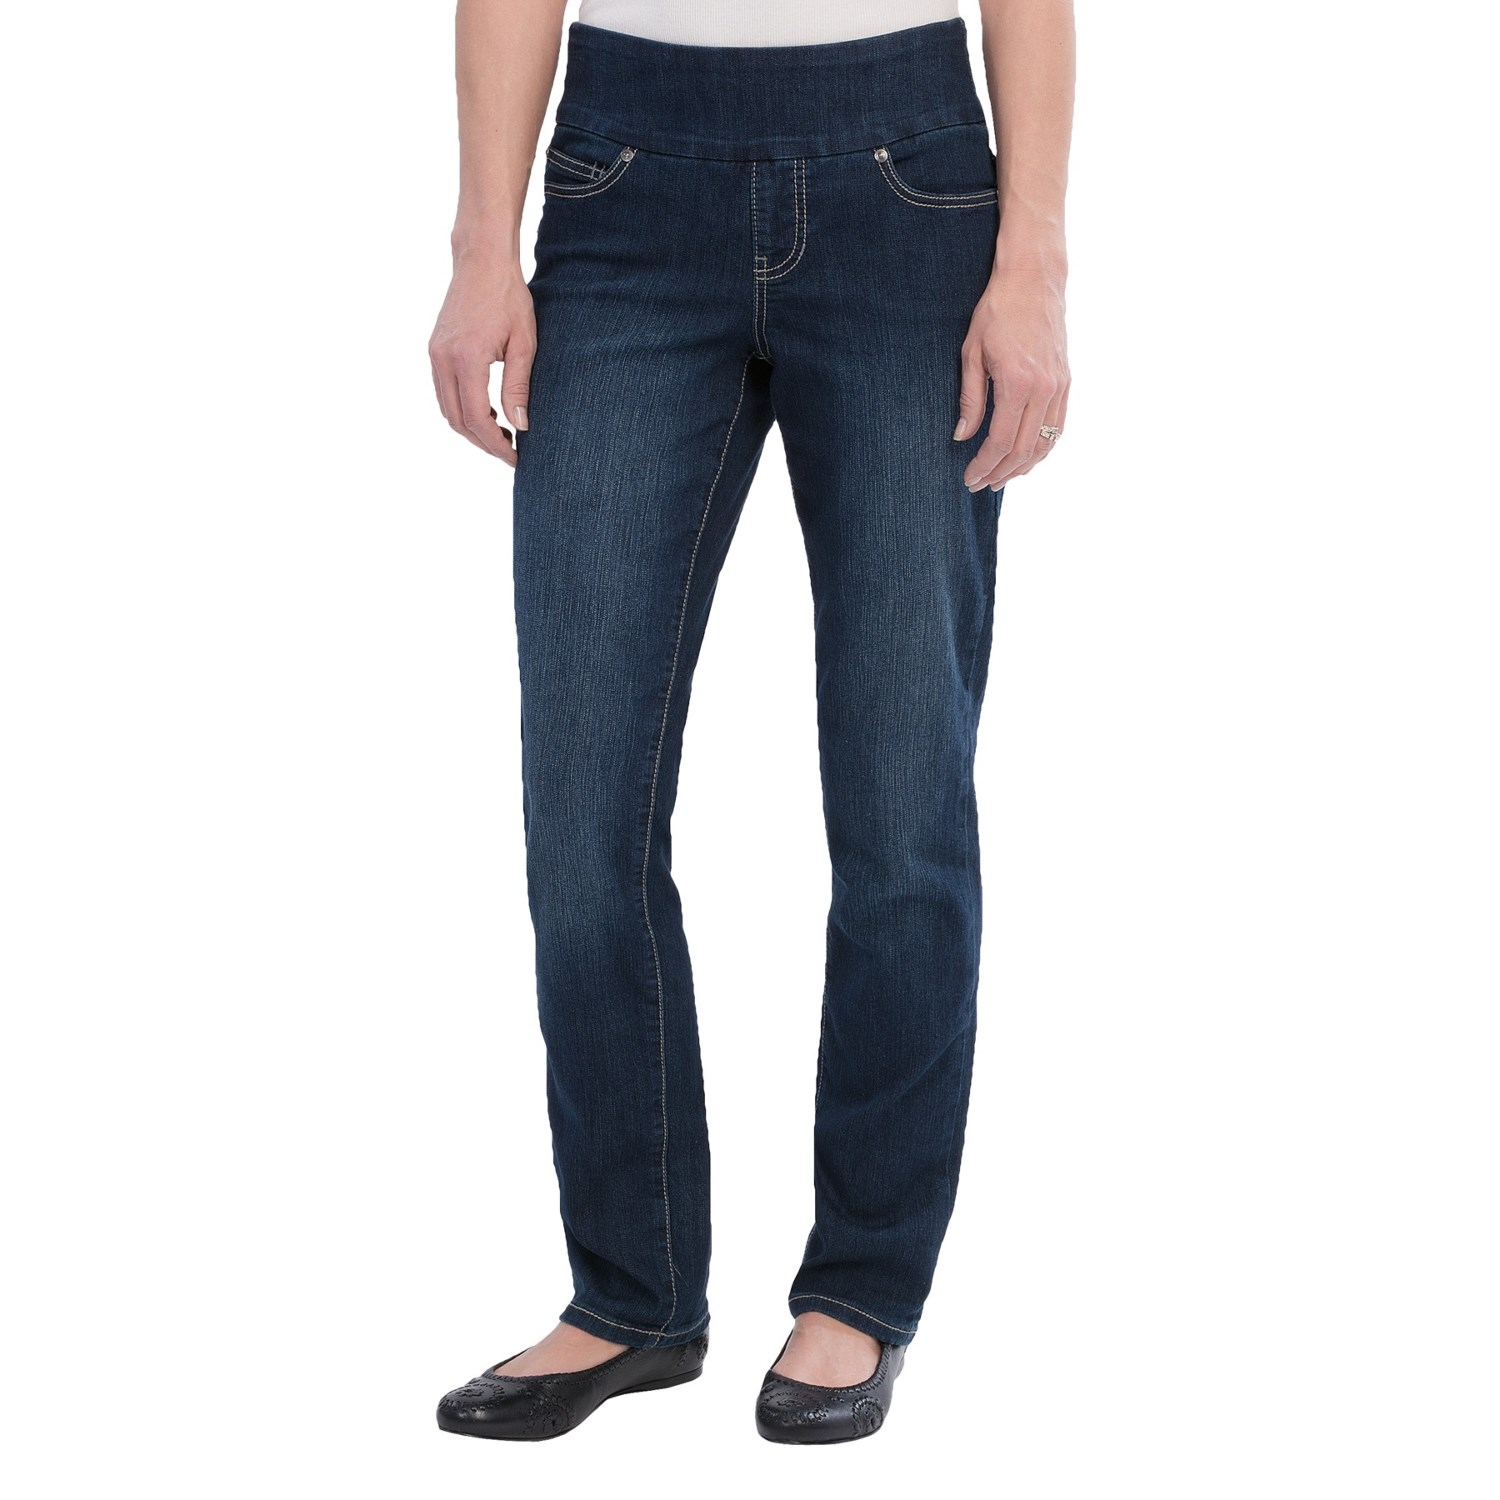 Pull on Jeans. invalid category id. Pull on Jeans. Showing 40 of 72 results that match your query. Search Product Result. Product - Pasion Women's Jeans · Push Up · Bootcut · High Waist · Style Product Image. Price $ Product Title.